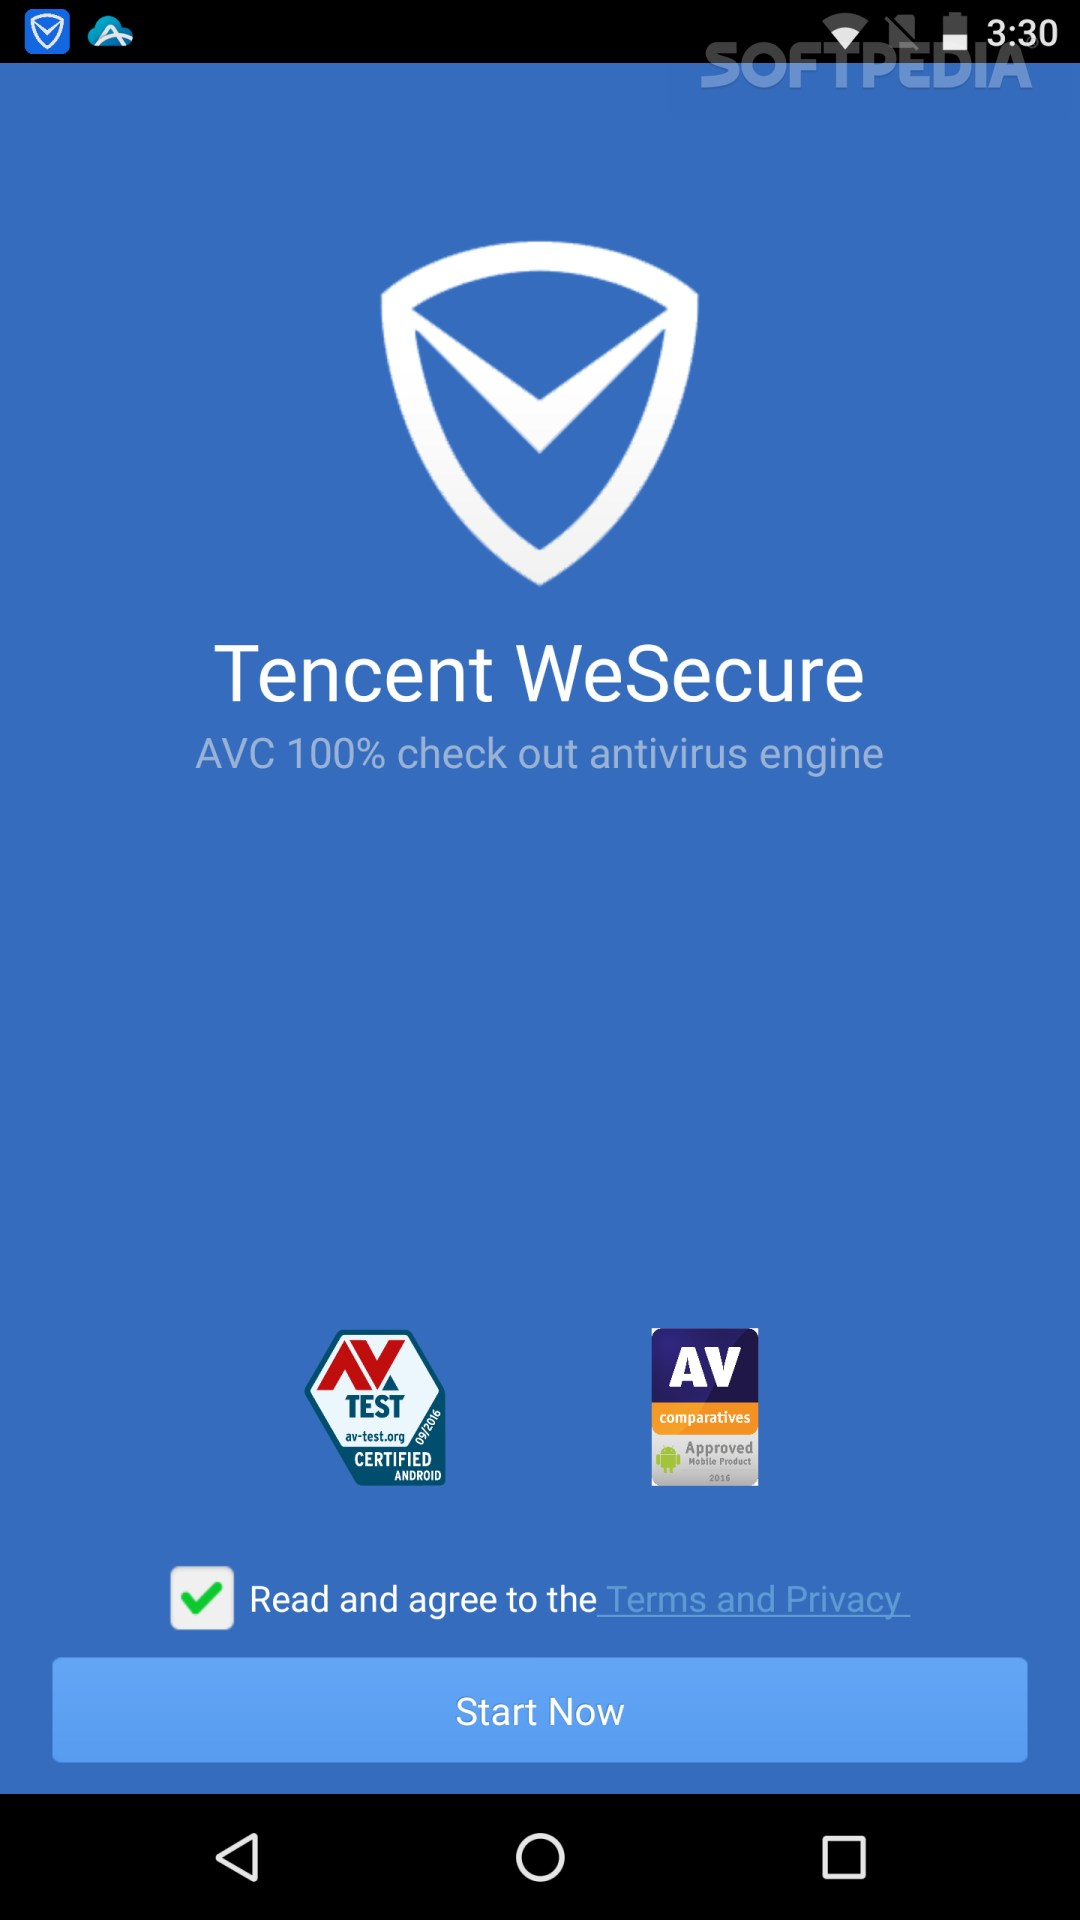 Tencent WeSecure APK Download